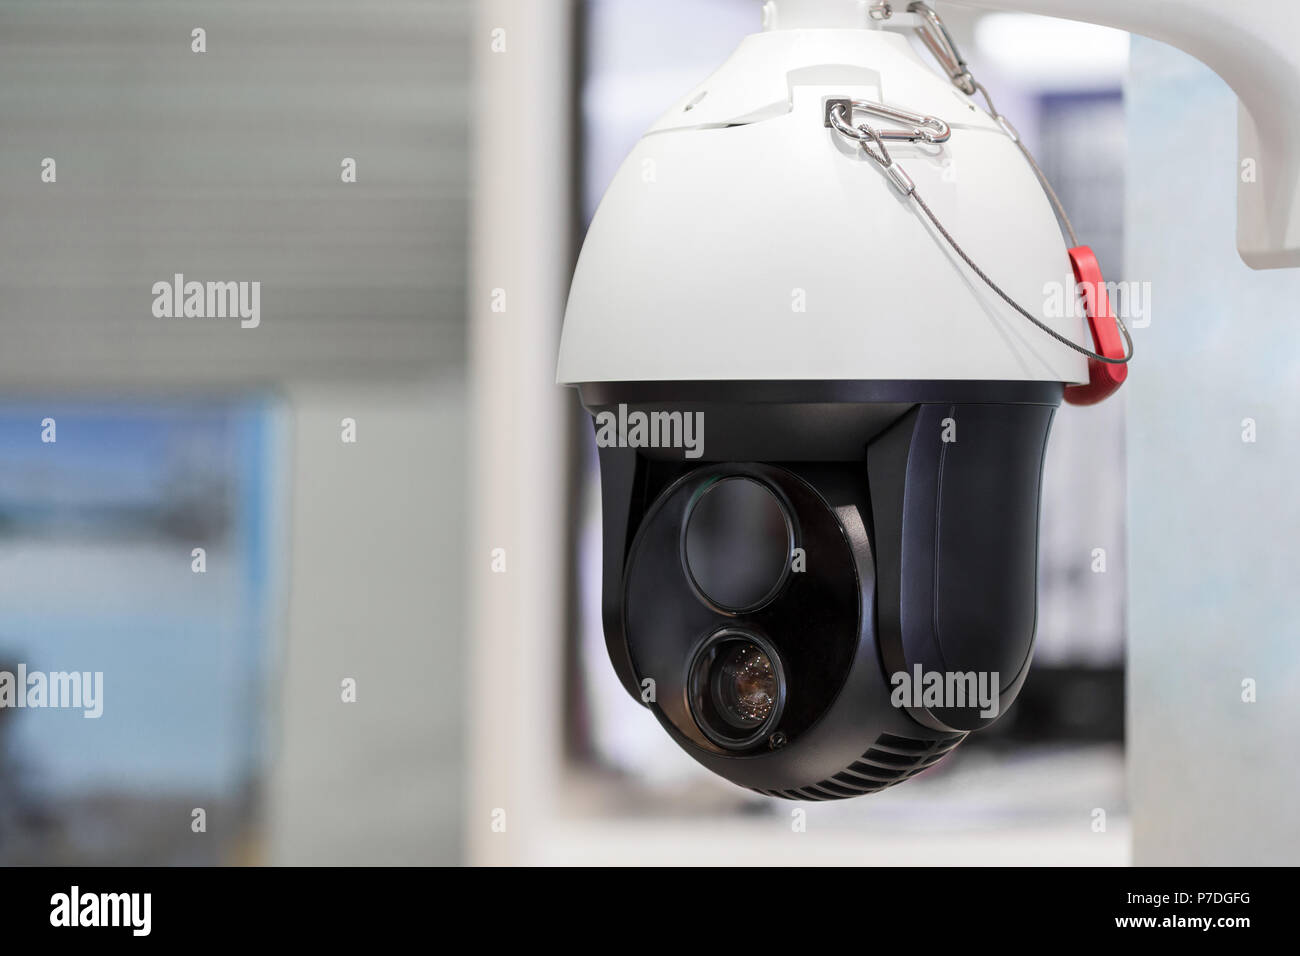 Modern motorized surveillance camera. Double wide angle moving lense. Self learning Artificial Intelligence. Tracking target. Folowing subject and dat - Stock Image